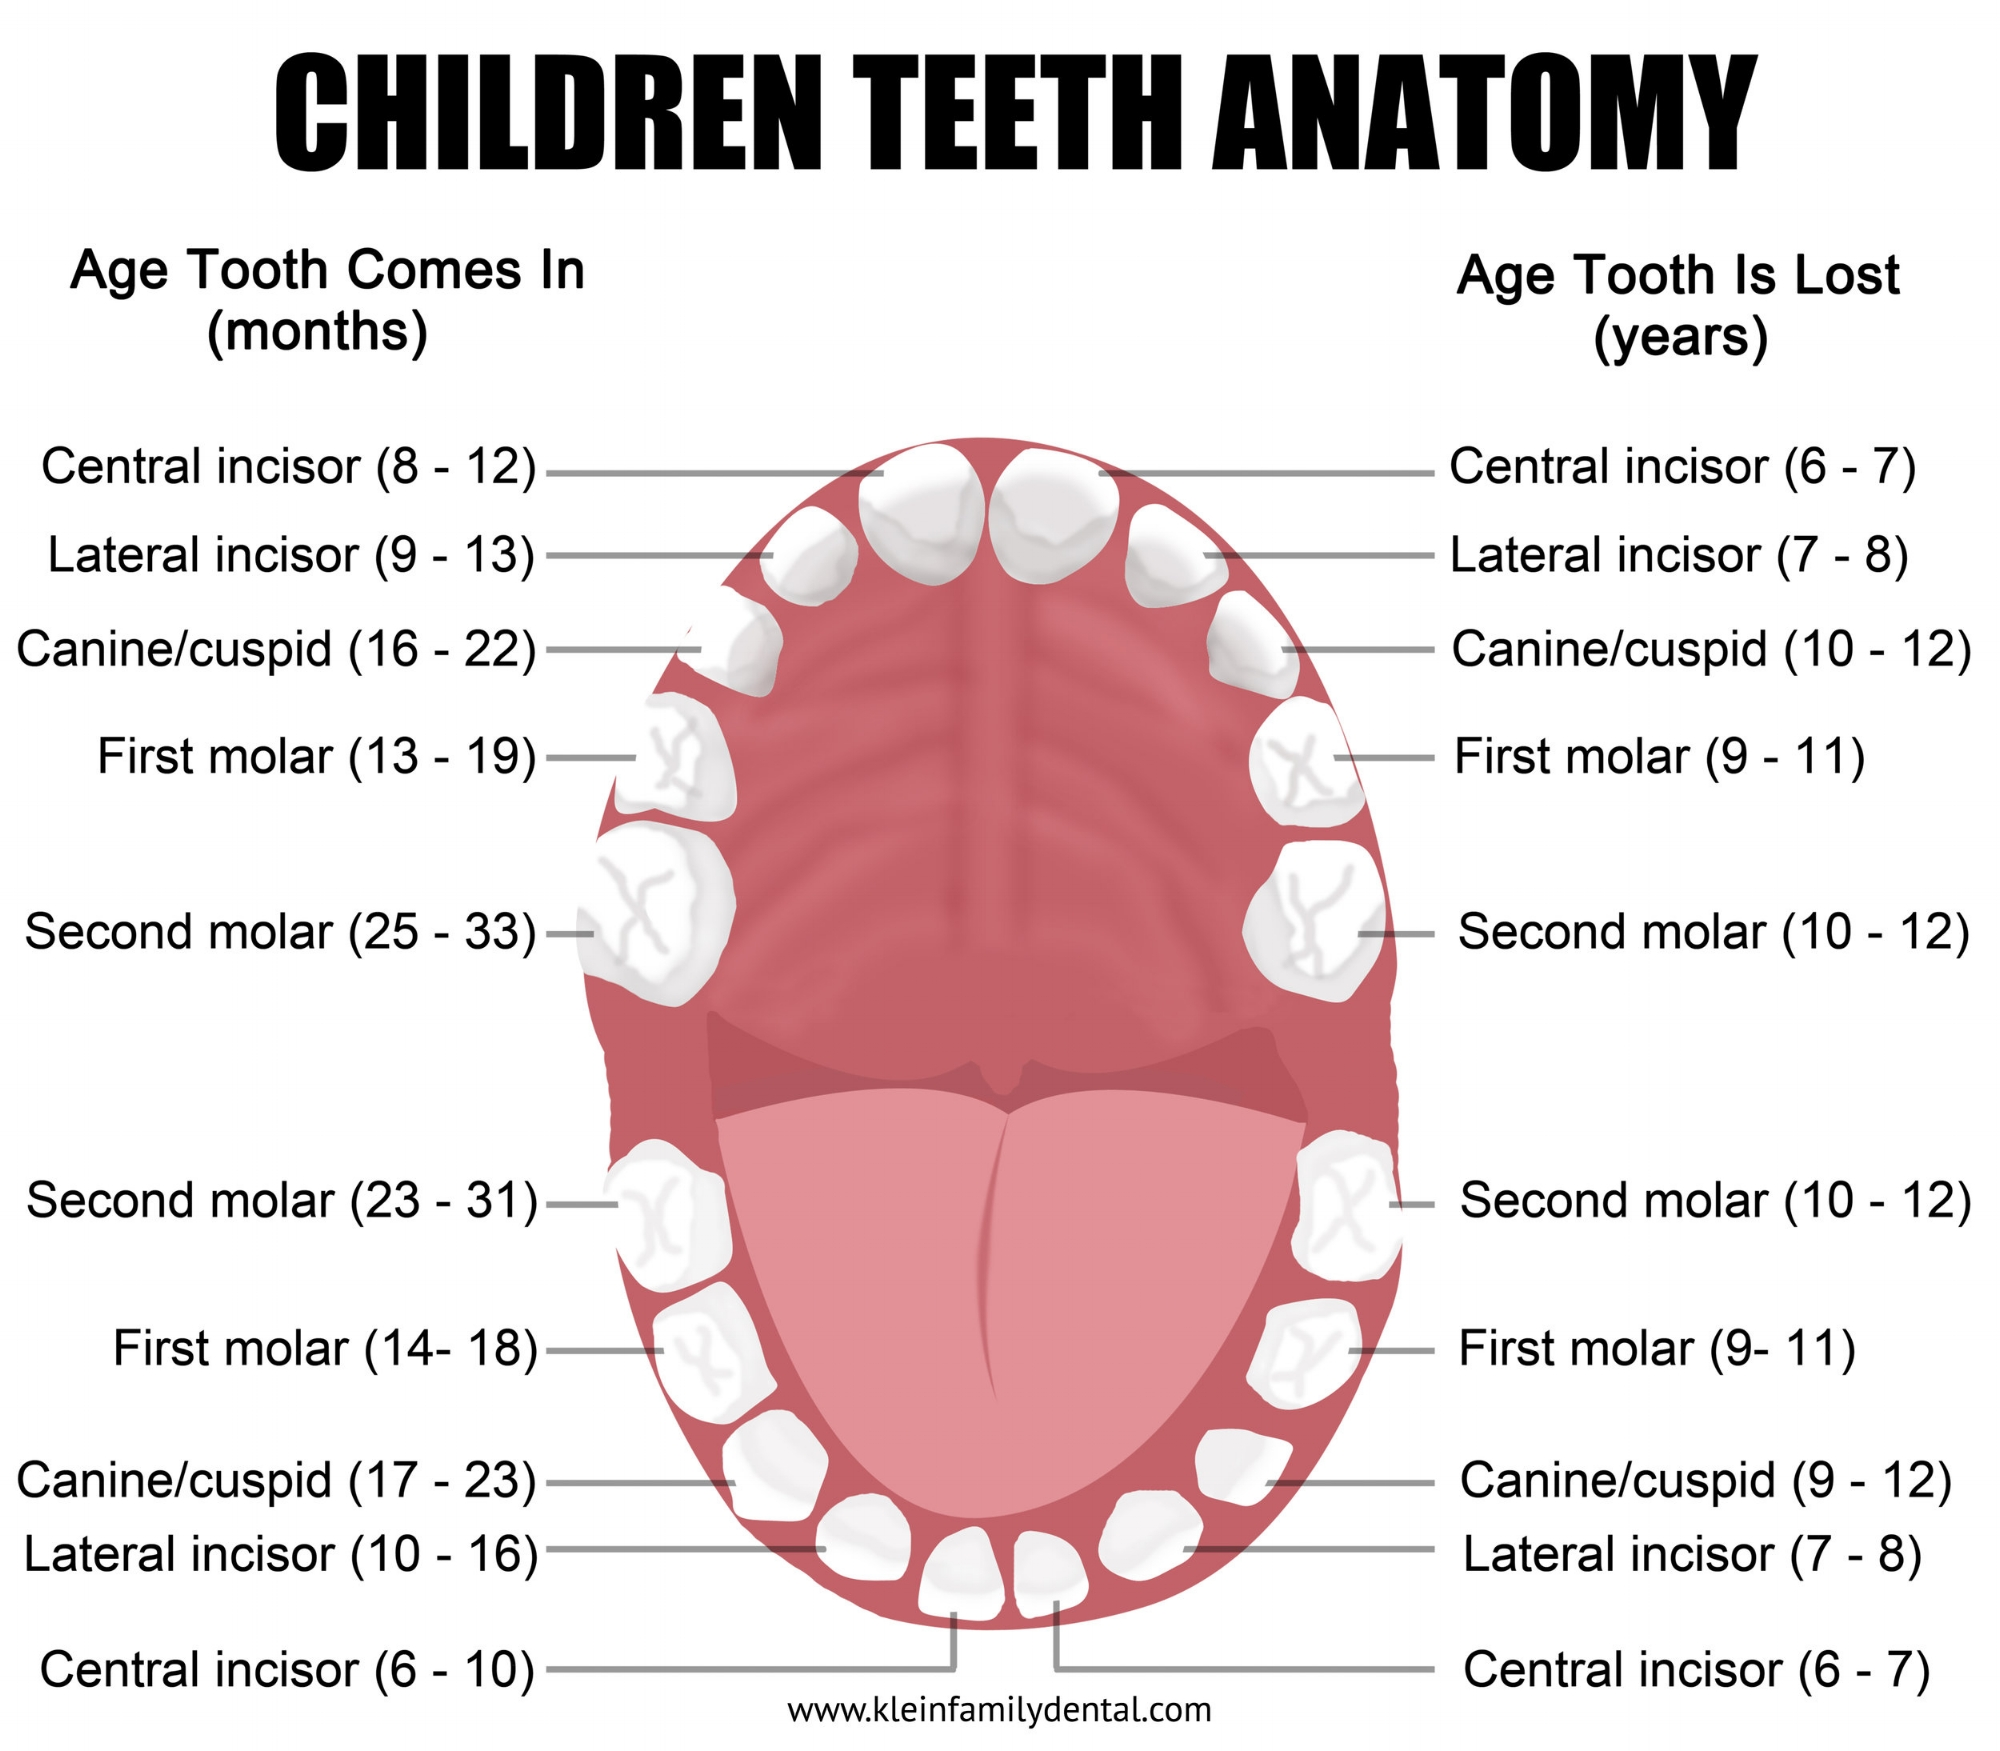 Click on this image to enlarge it into full view also pediatric tooth chart  klein family dental rh kleinfamilydental